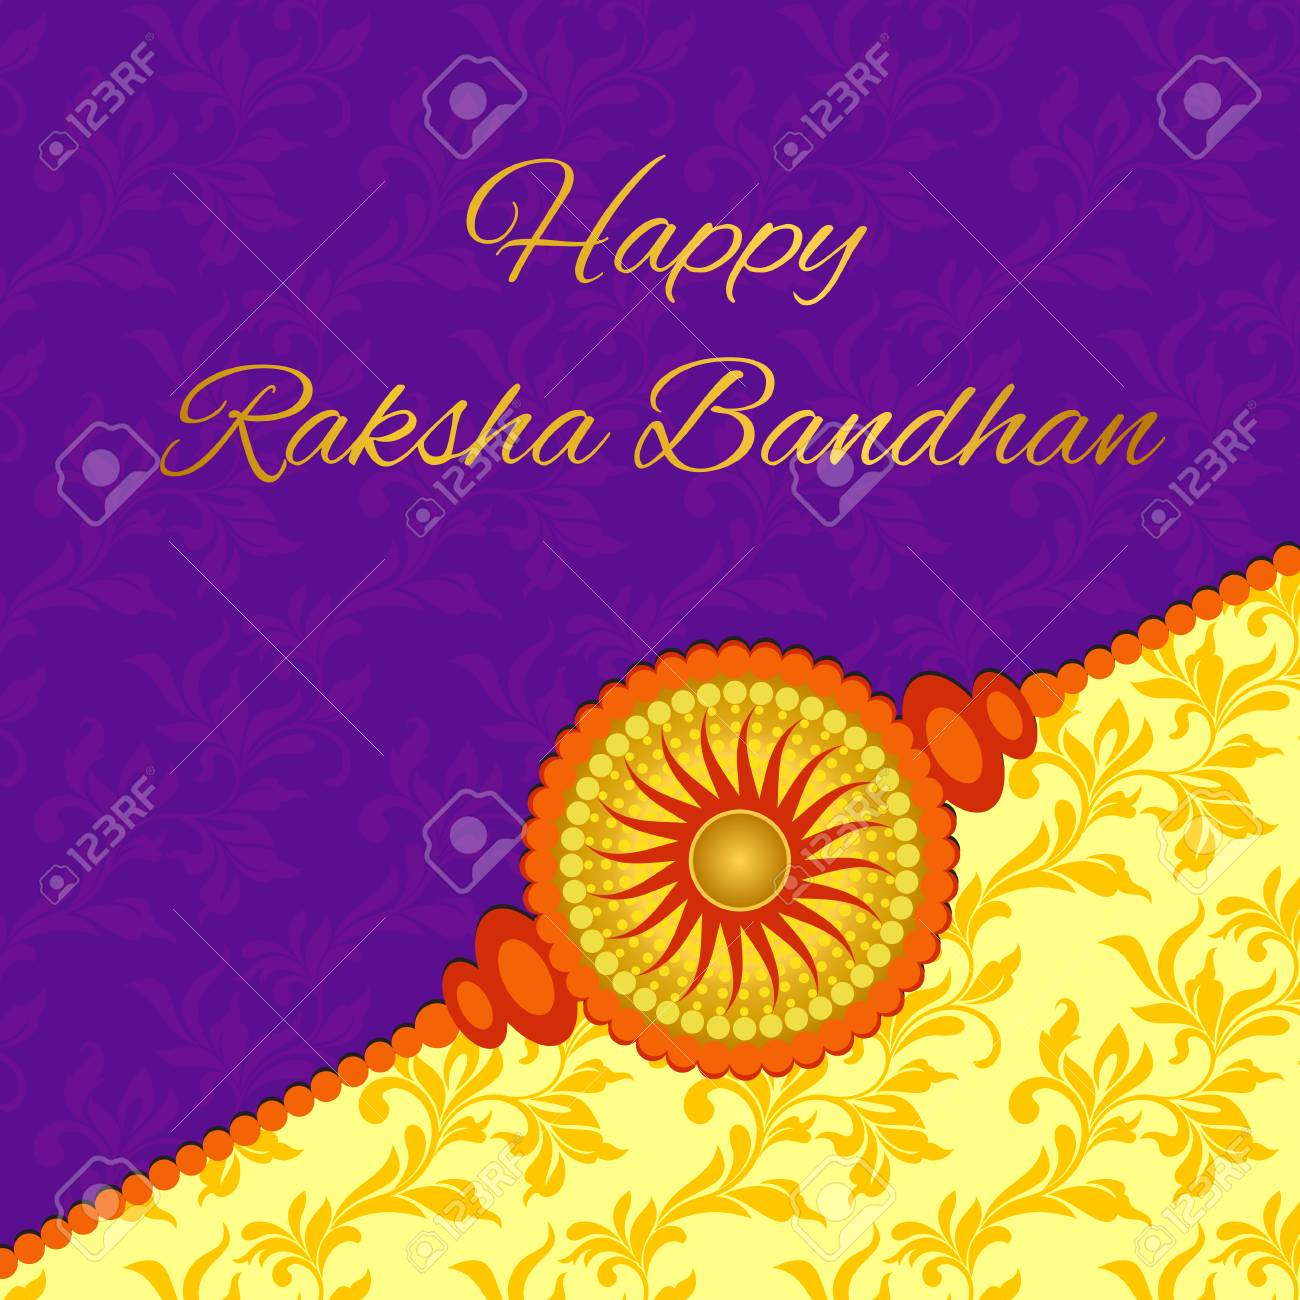 Happy Raksha Bandhan Elegant Greeting Card With Beautiful Rakhi